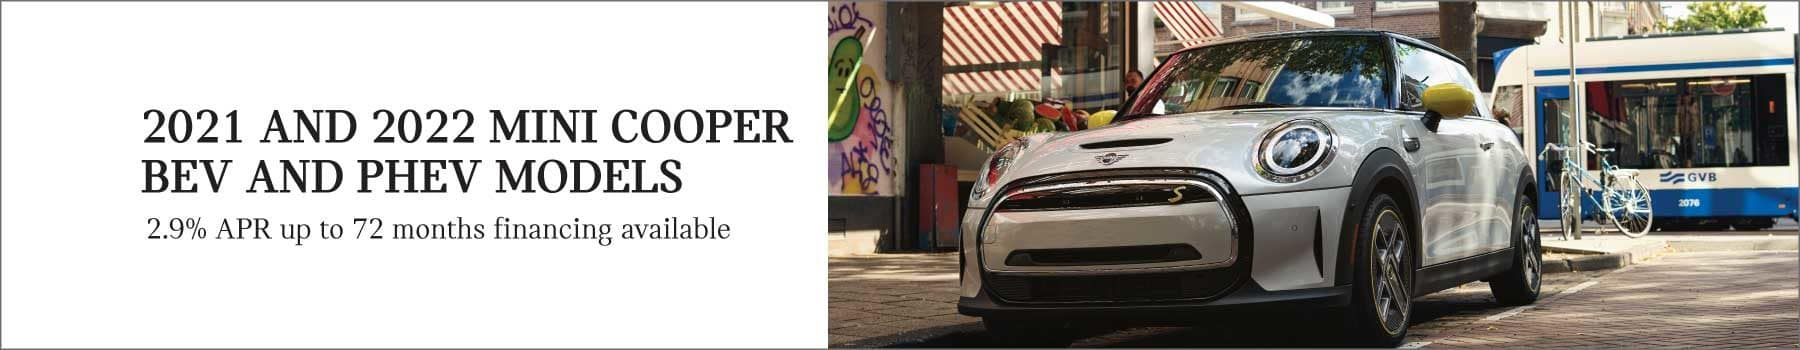 2021 and 2022 MINI Cooper BEV and PHEV Models. 2.9% APR for up to 72 months financing available. See dealer for full details. Click to view inventory. Image shows a MINI Cooper SE Hardtop 2 Door parked near the curb in an urban area.